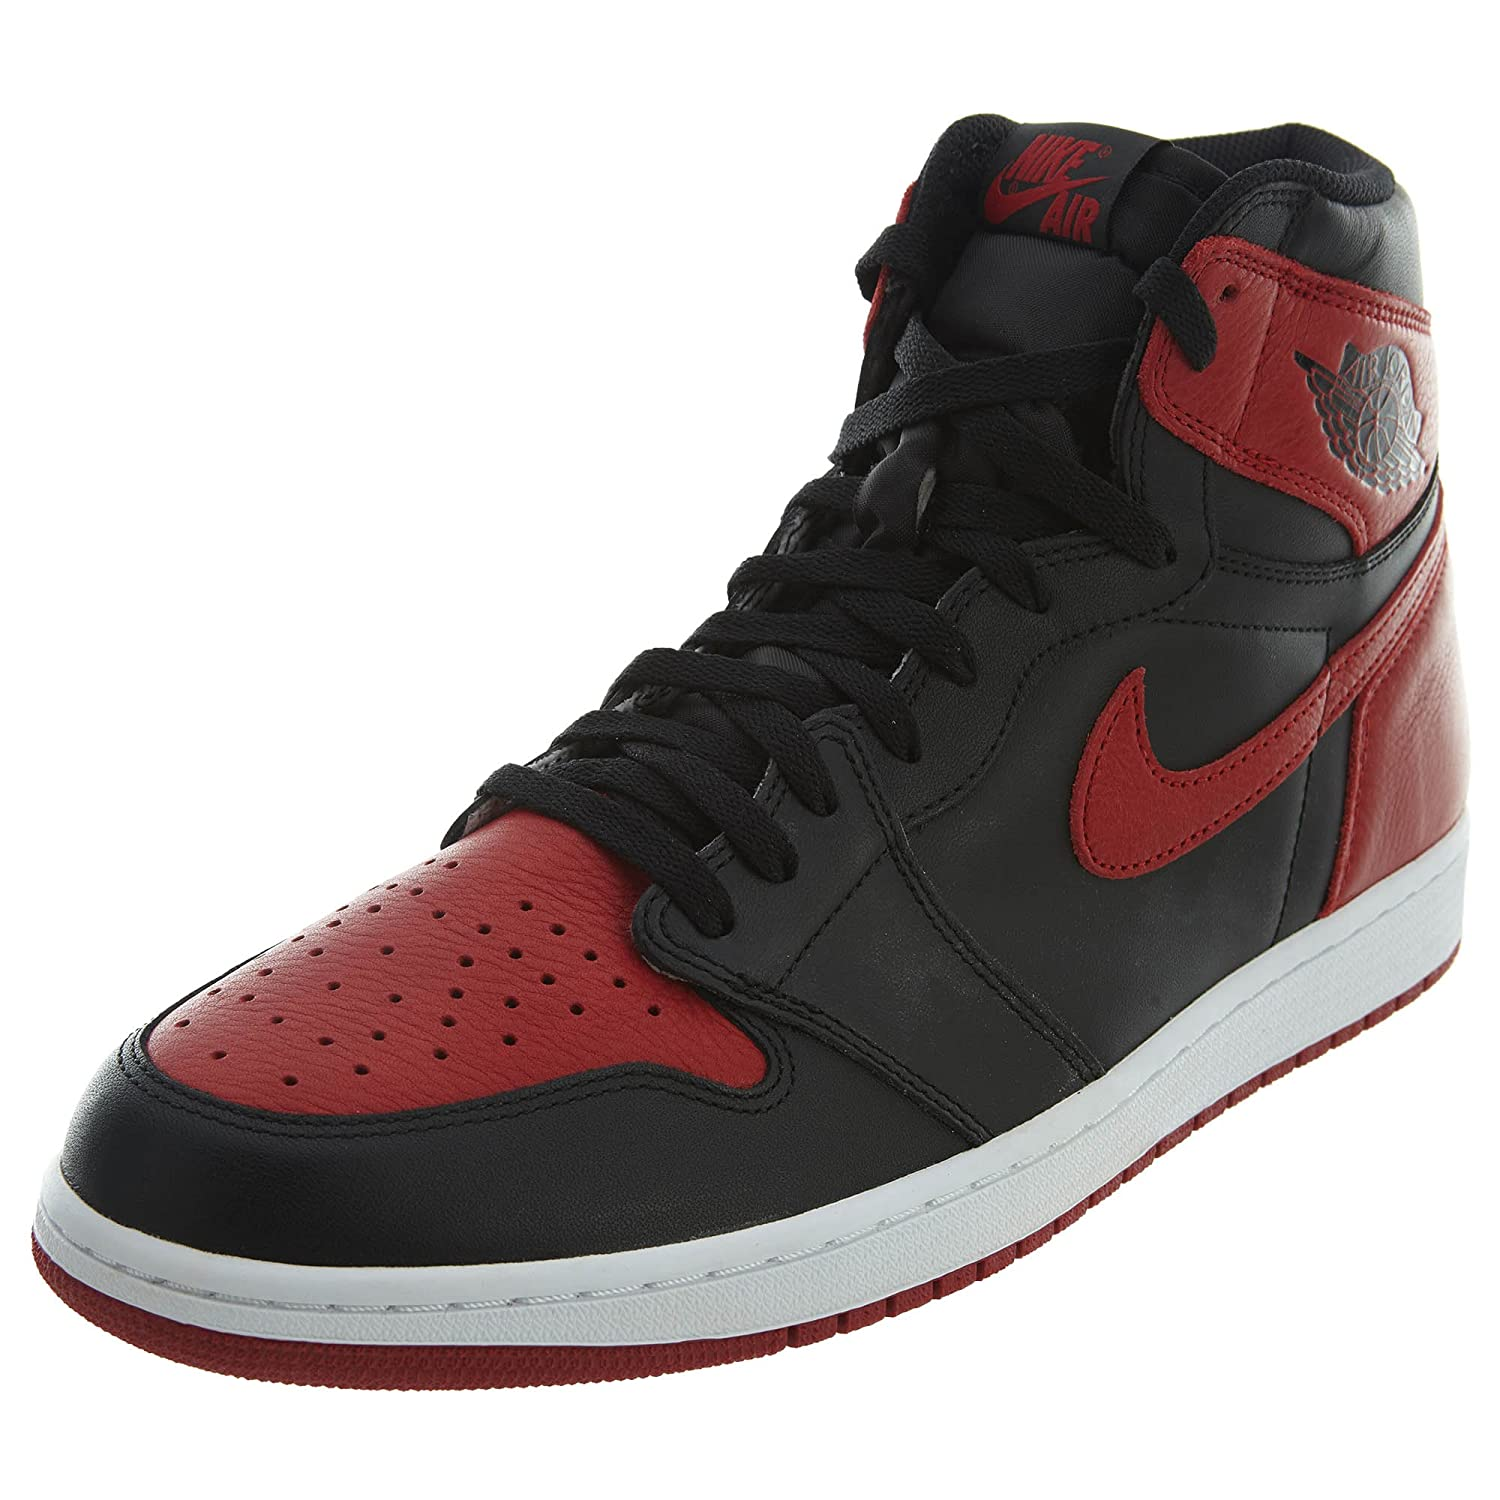 fb47df36ceb9 Nike Men s s Air Jordan 1 Retro High Og Basketball Shoes  Amazon.co.uk   Shoes   Bags